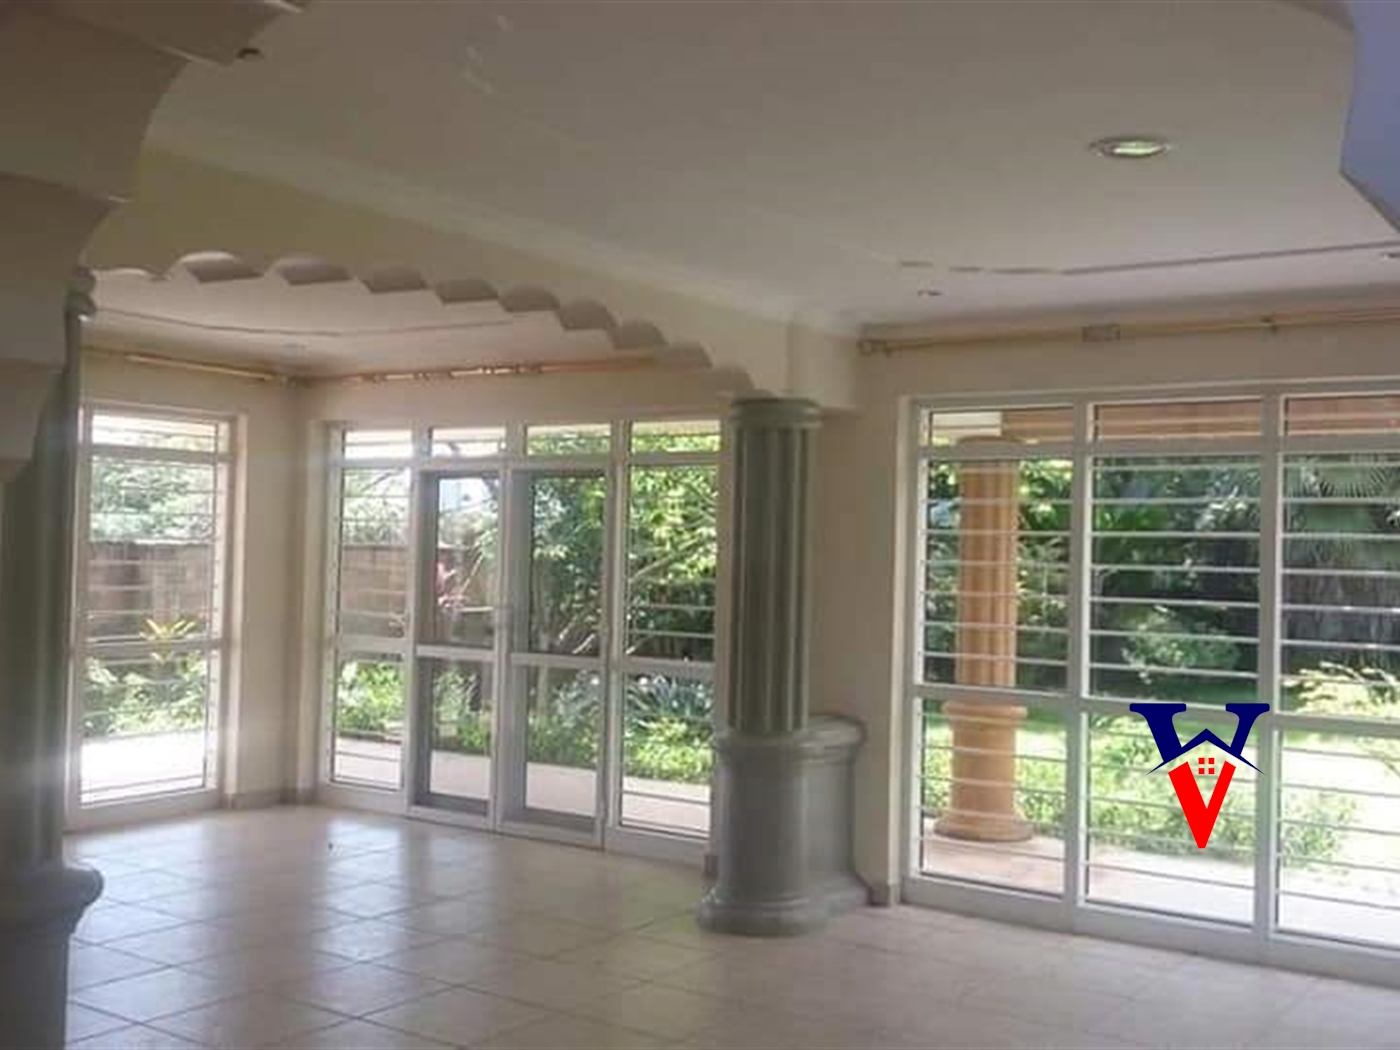 Storyed house for sale in Luzira Kampala